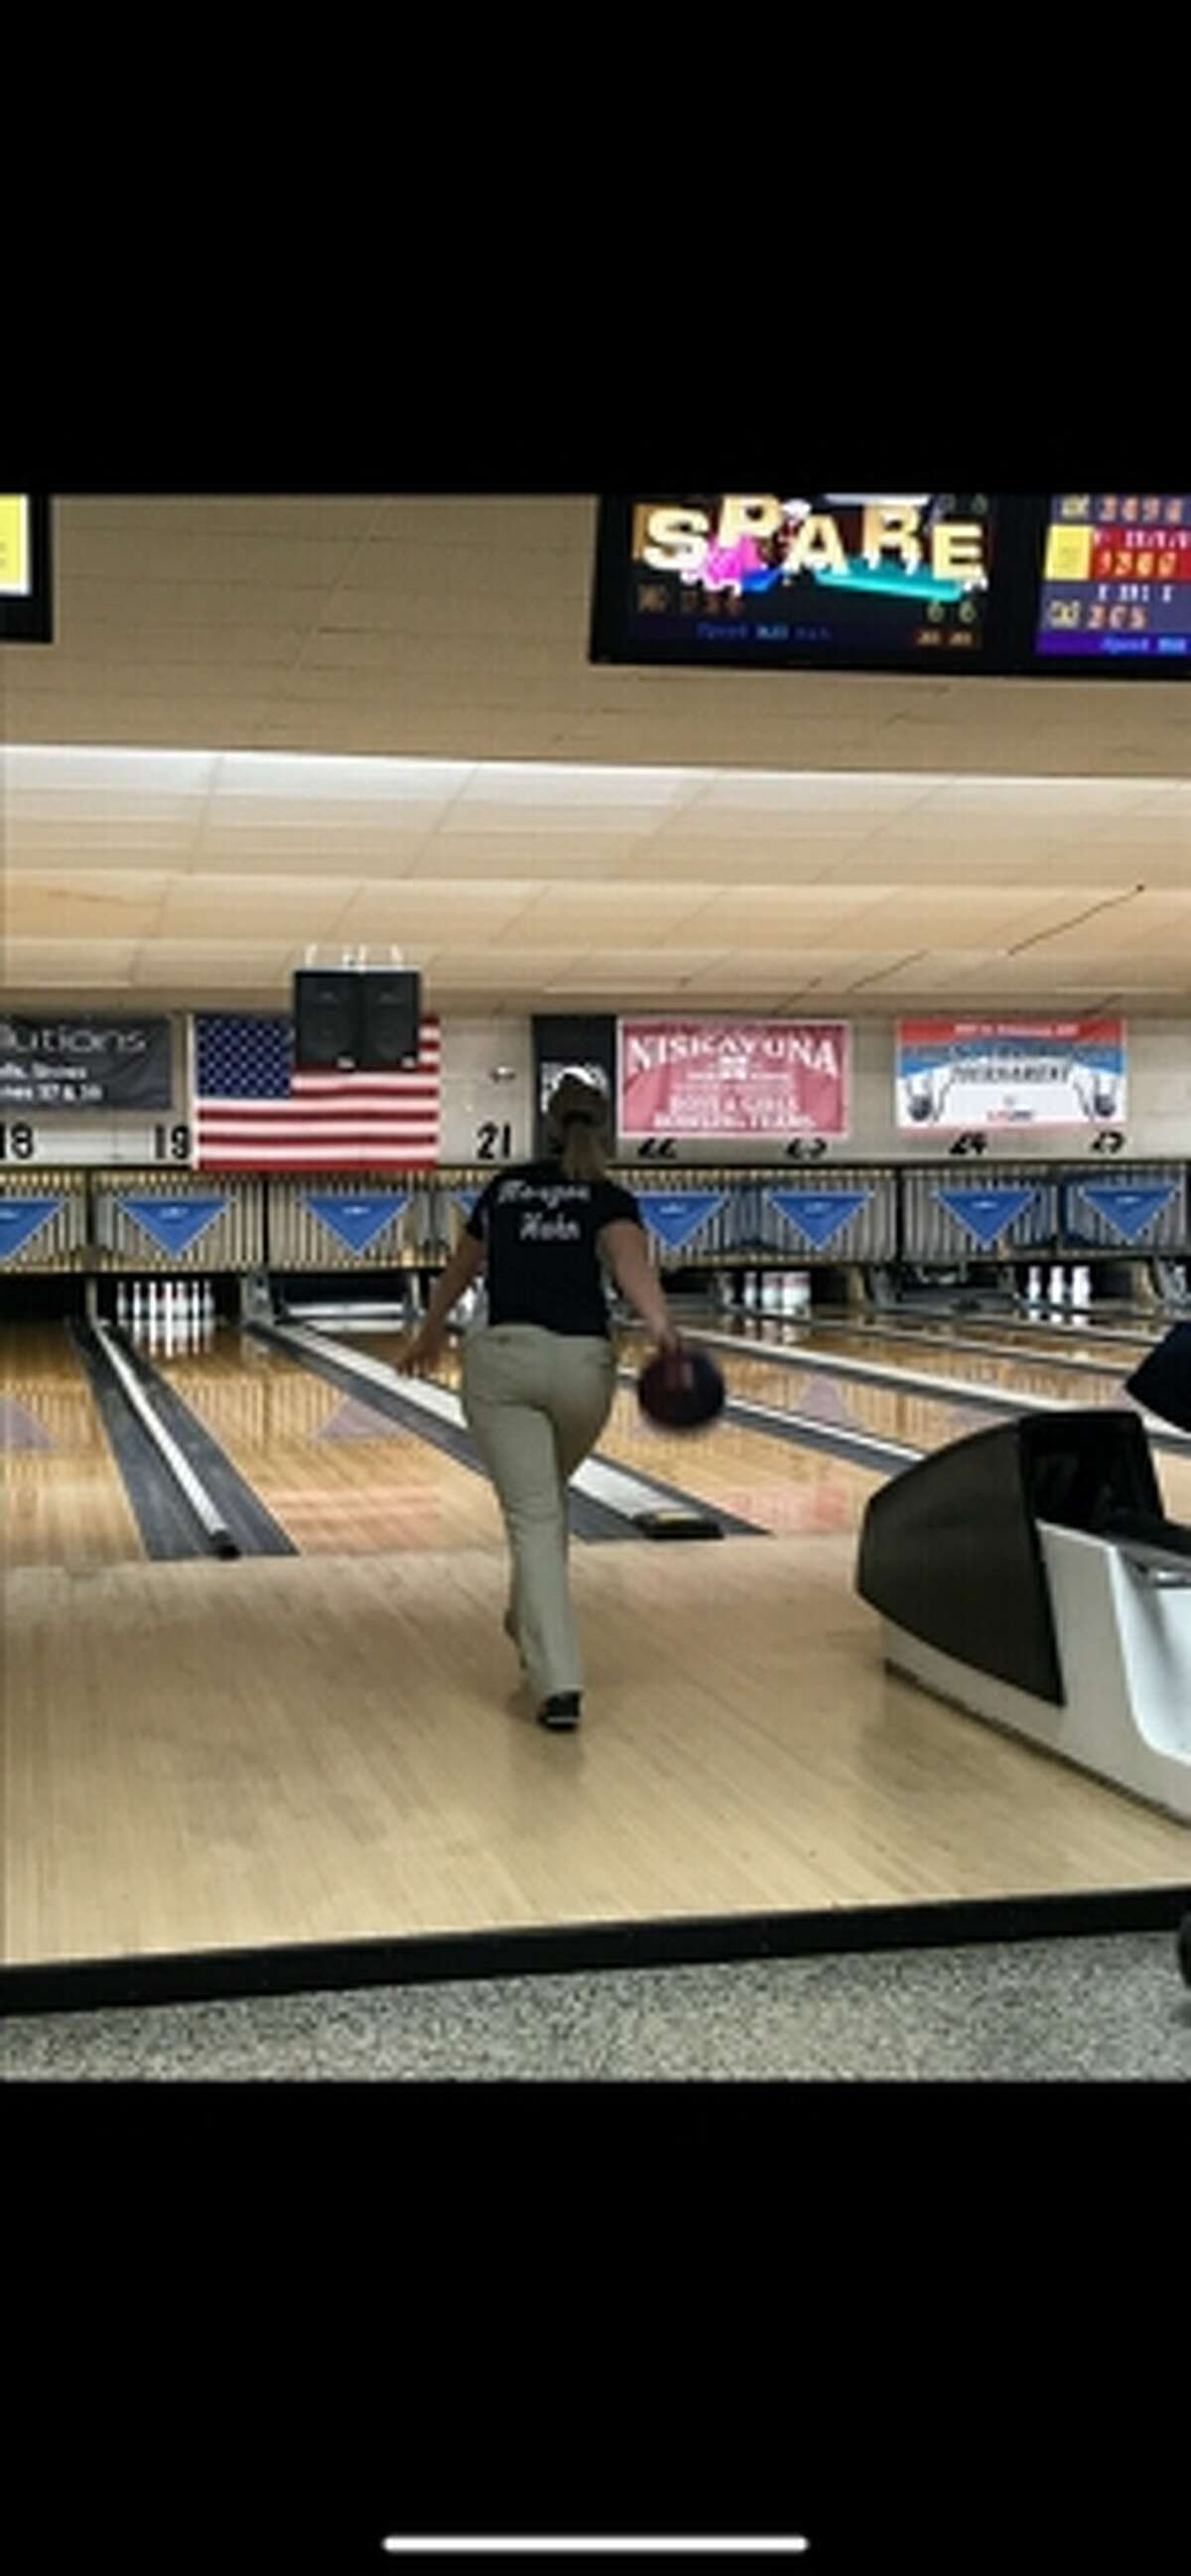 Morgan Hahn showed leadership for Columbia's bowling teams this season and led the Suburban Council with a 197 average. (Provided photo)